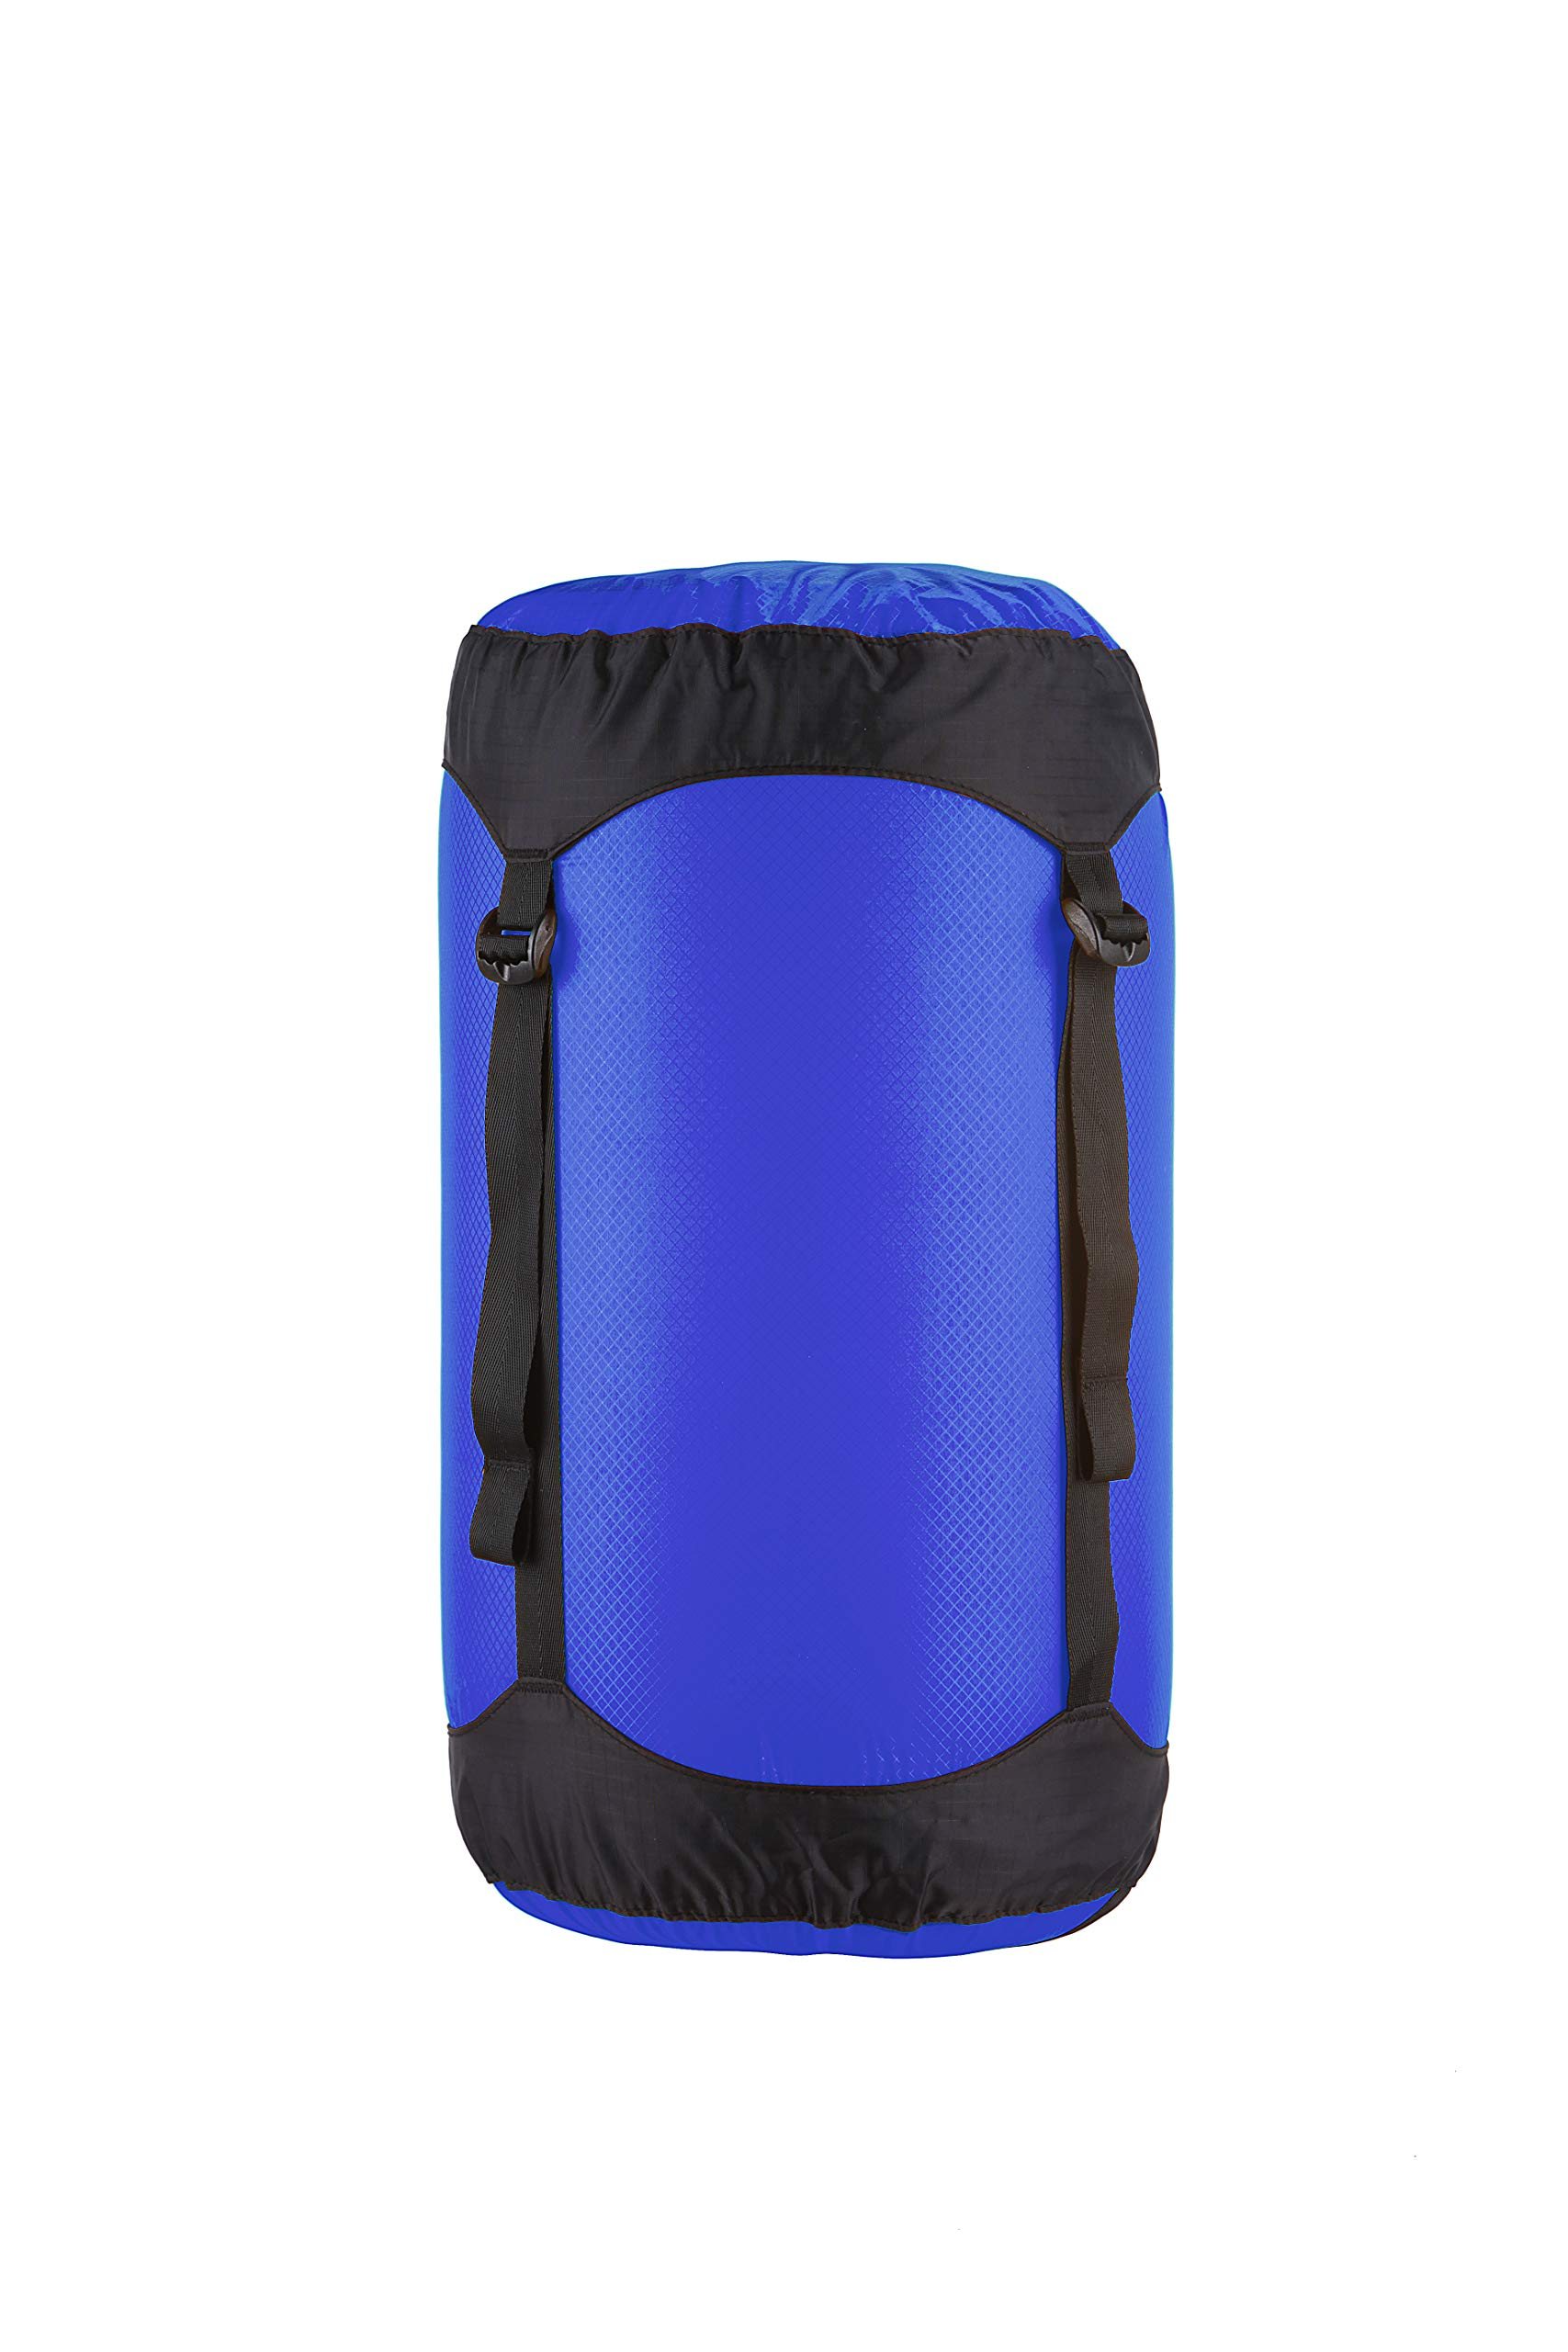 Sea to Summit Ultra-SIL Compression Sack, Royal Blue, 10 Liter by Sea to Summit